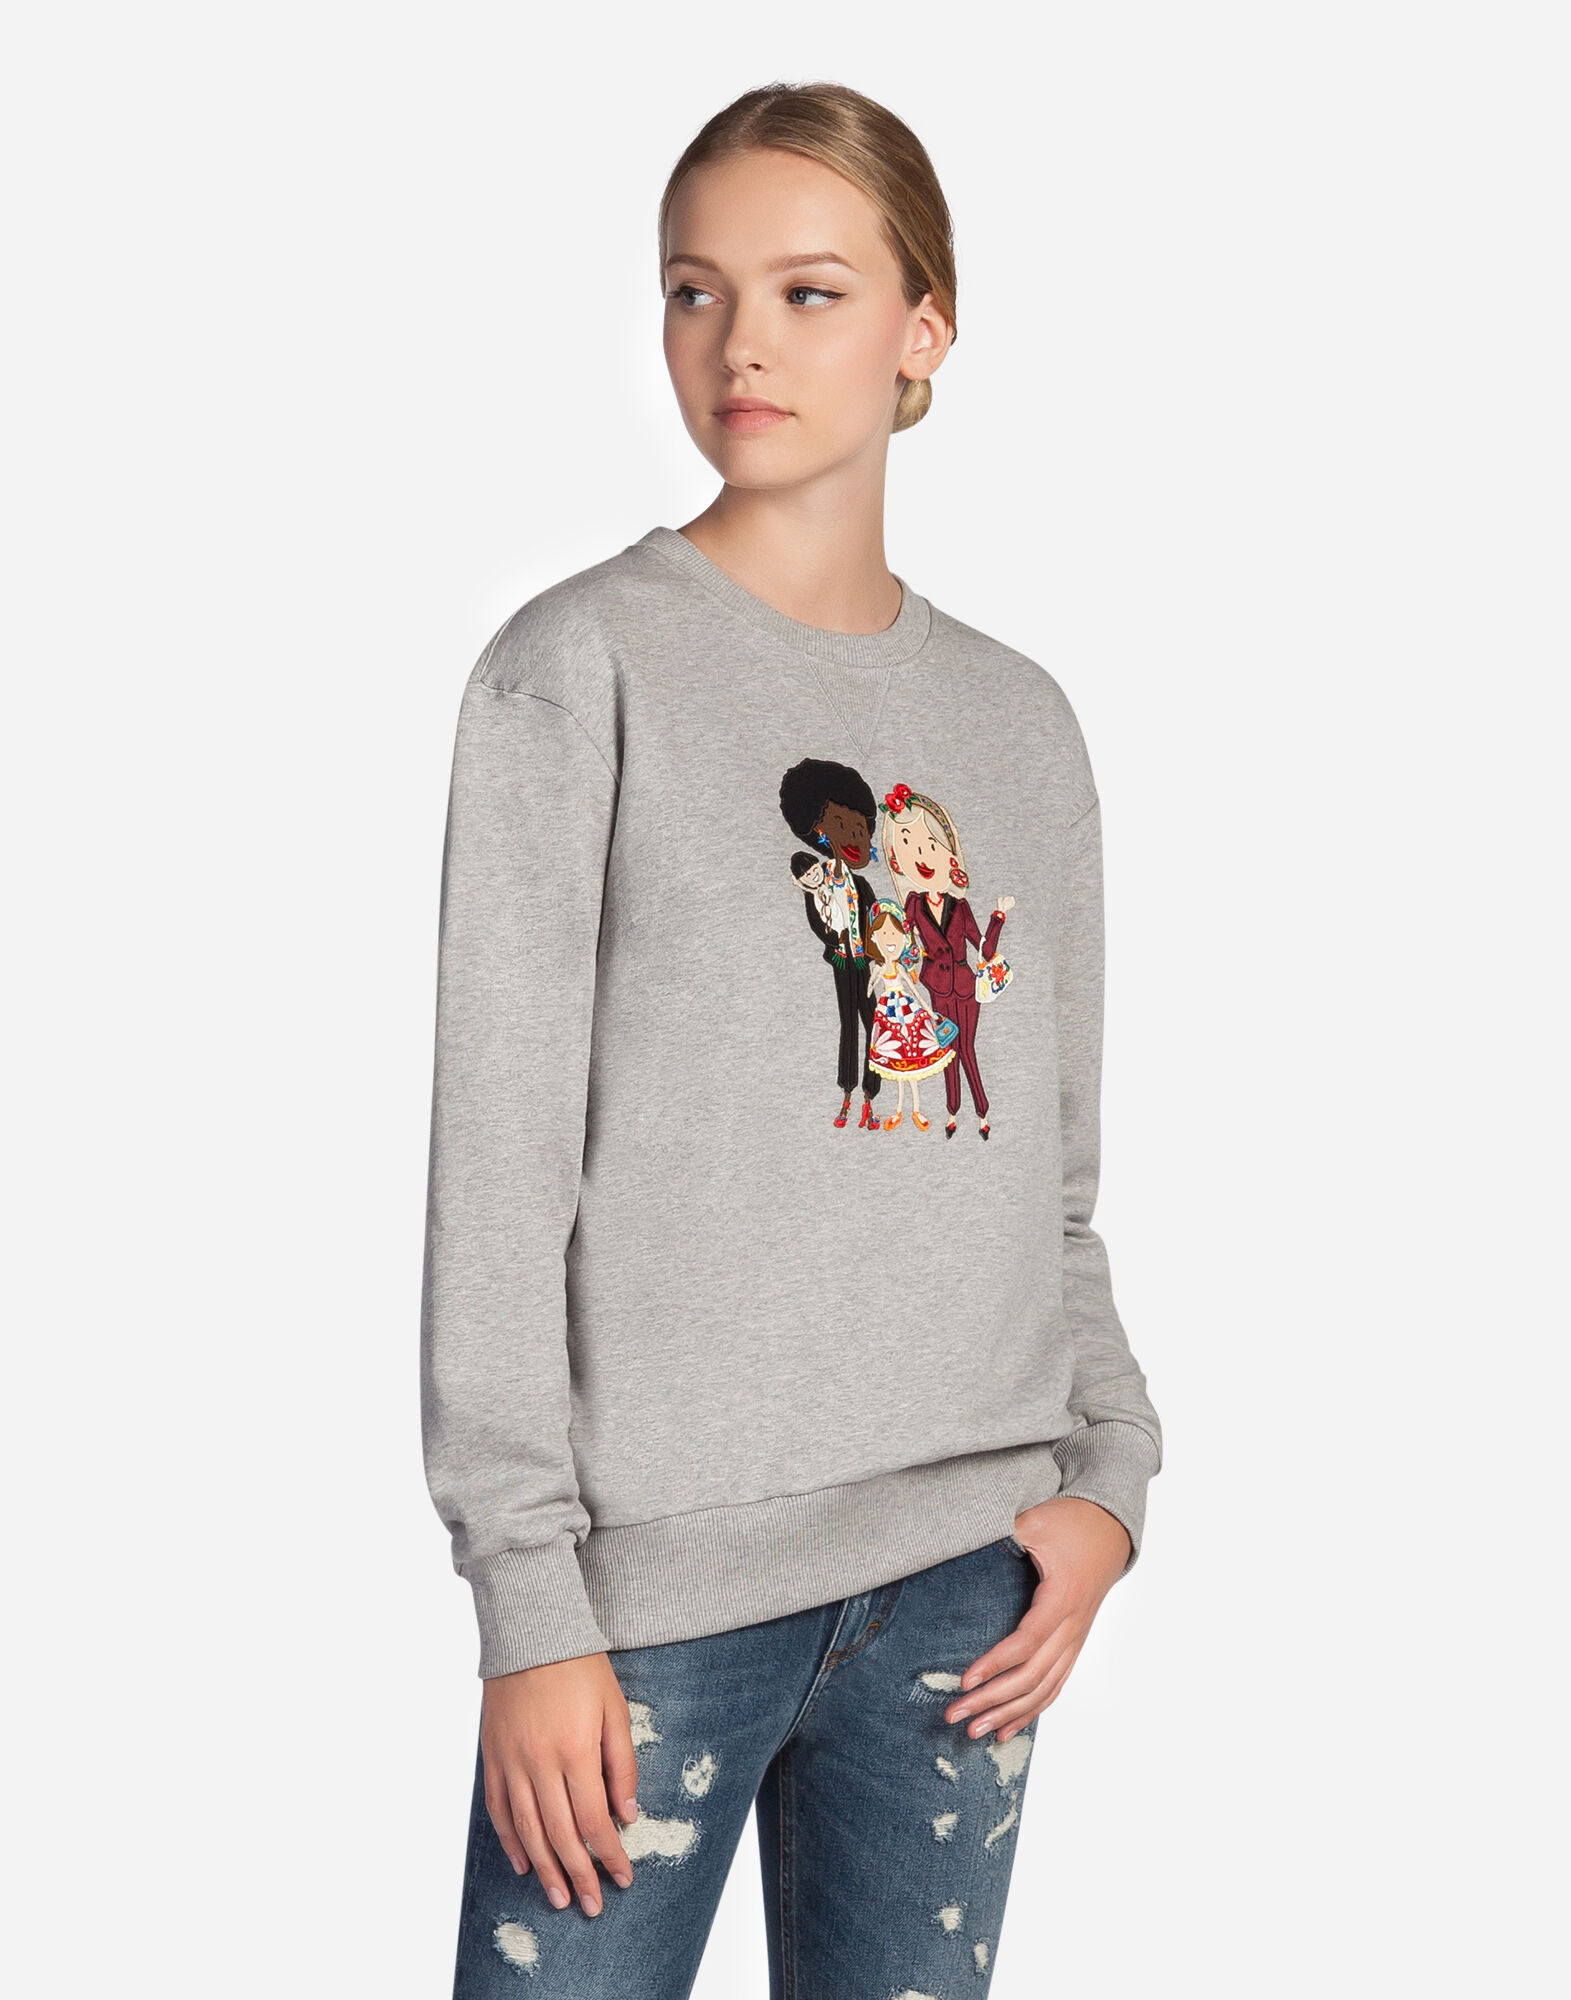 COTTON SWEATSHIRT WITH DG FAMILY PATCH